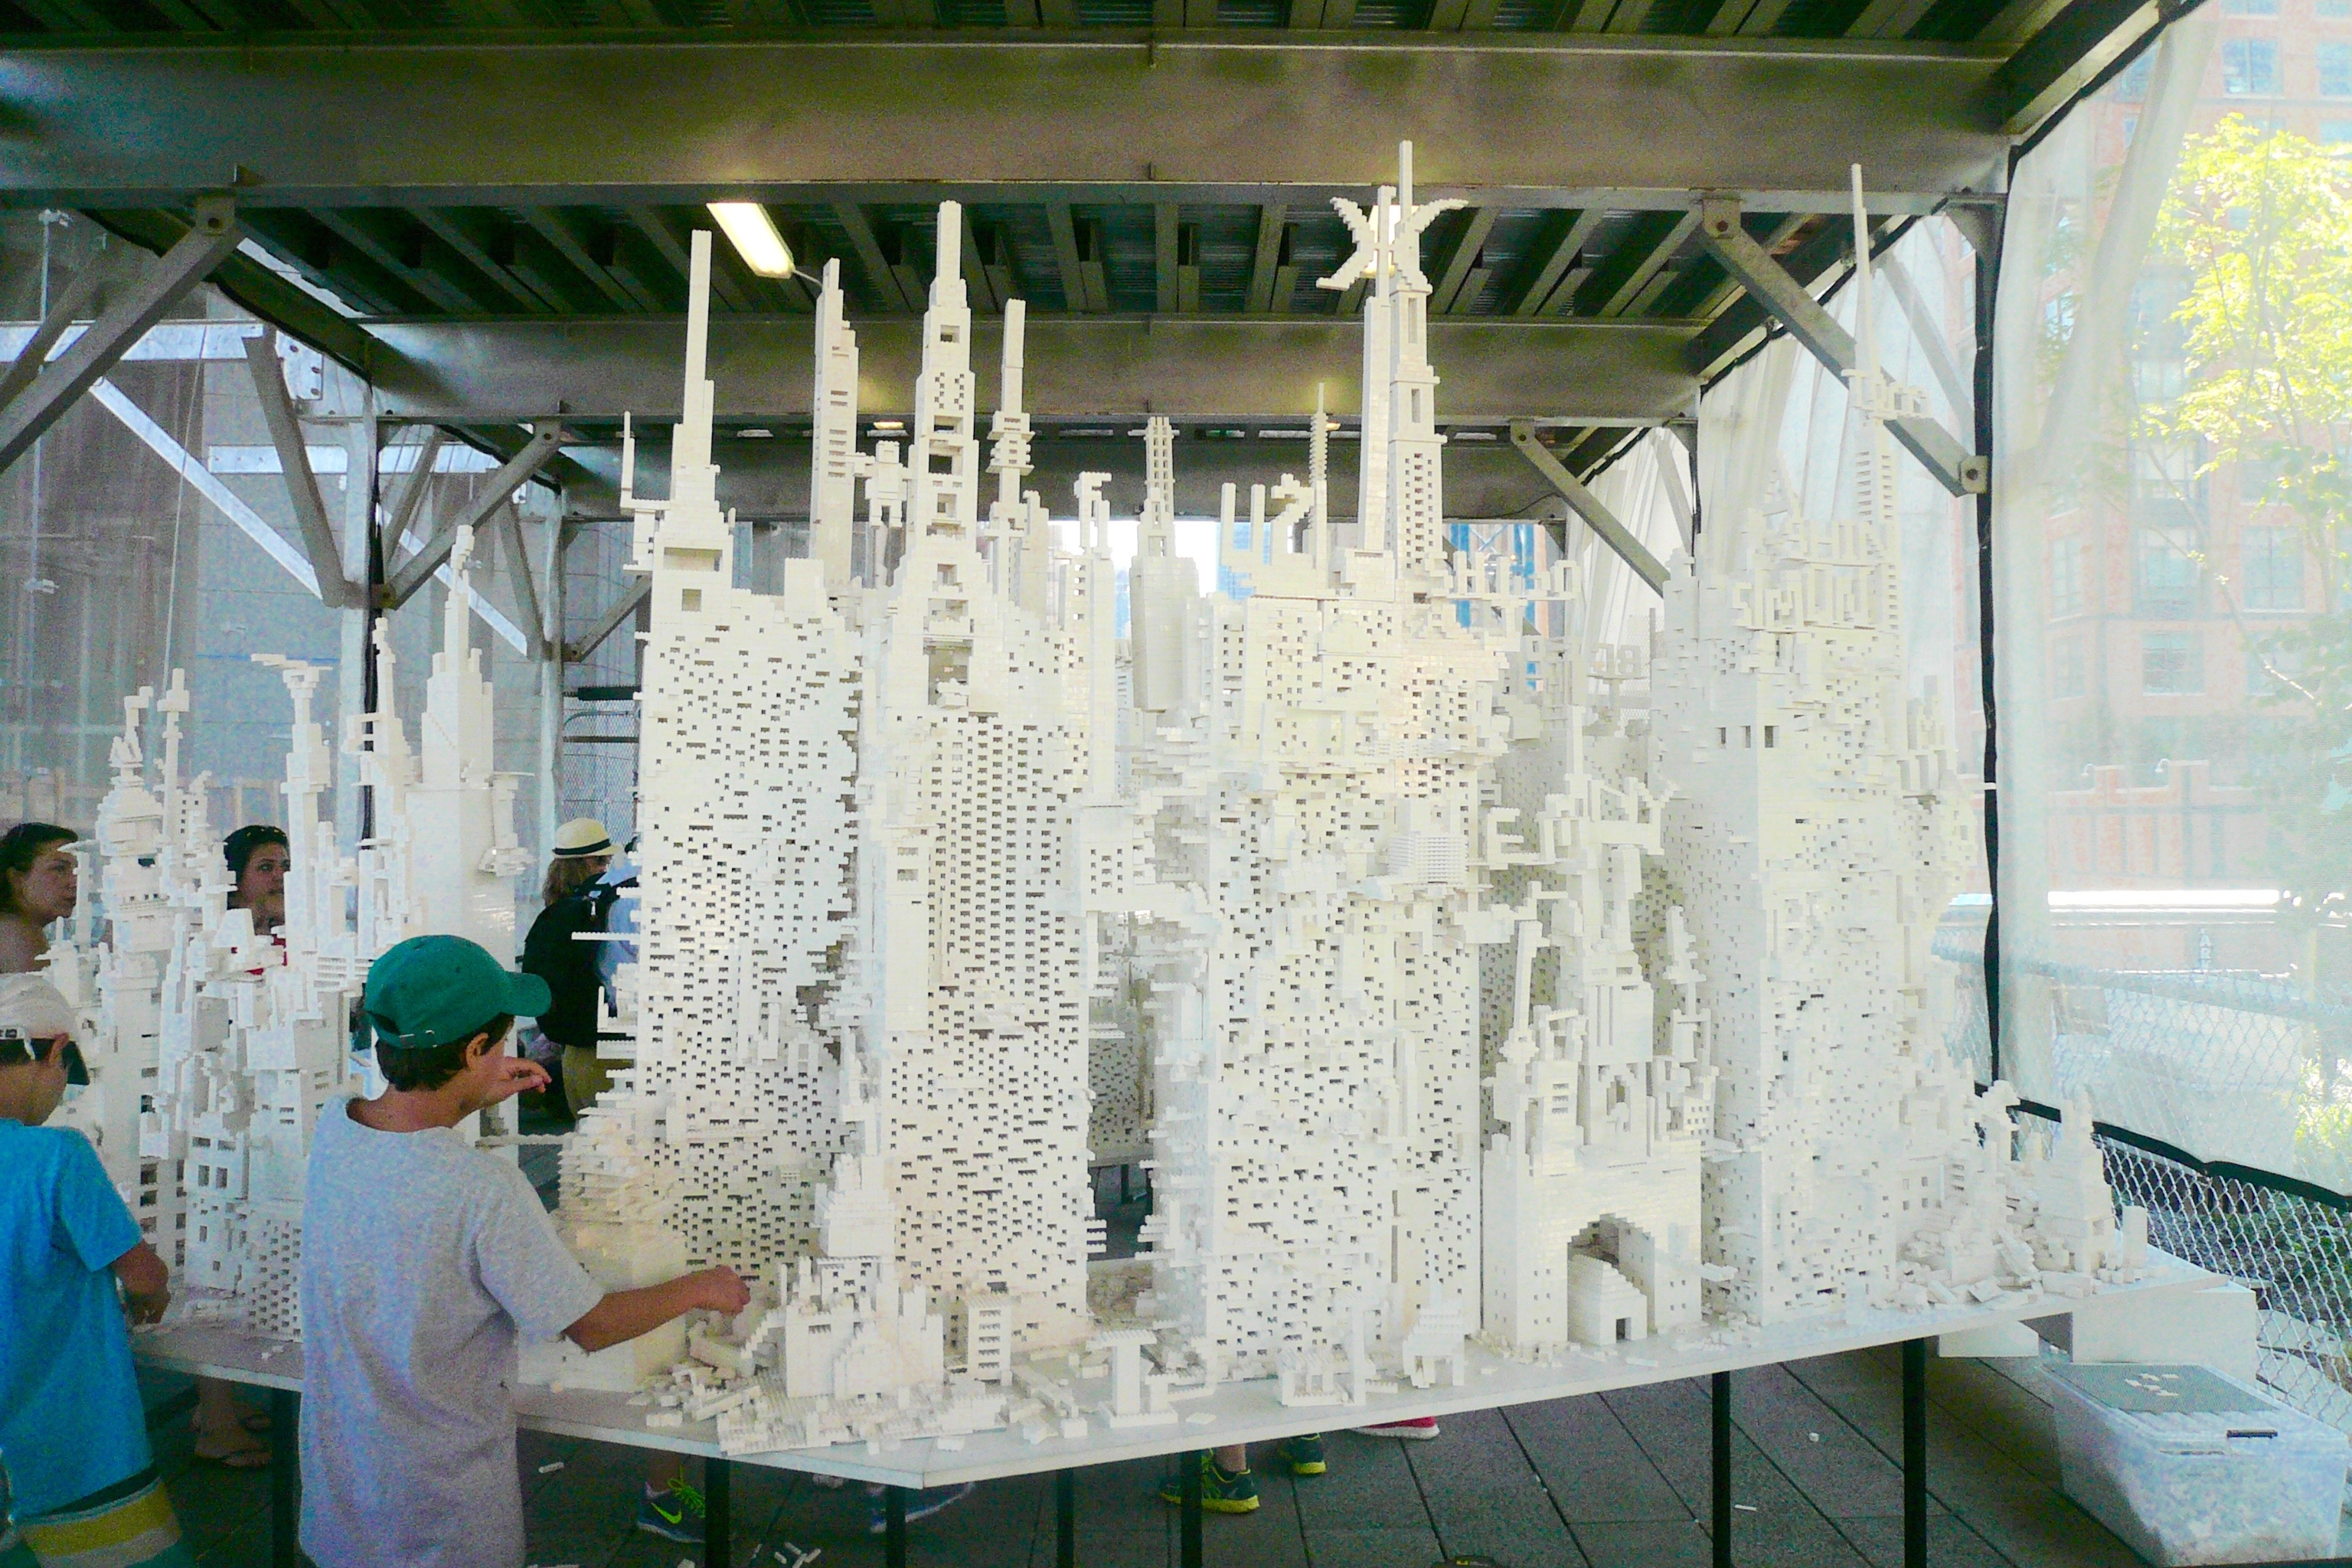 Visitors of the High Line Park build an imaginary city with Legos